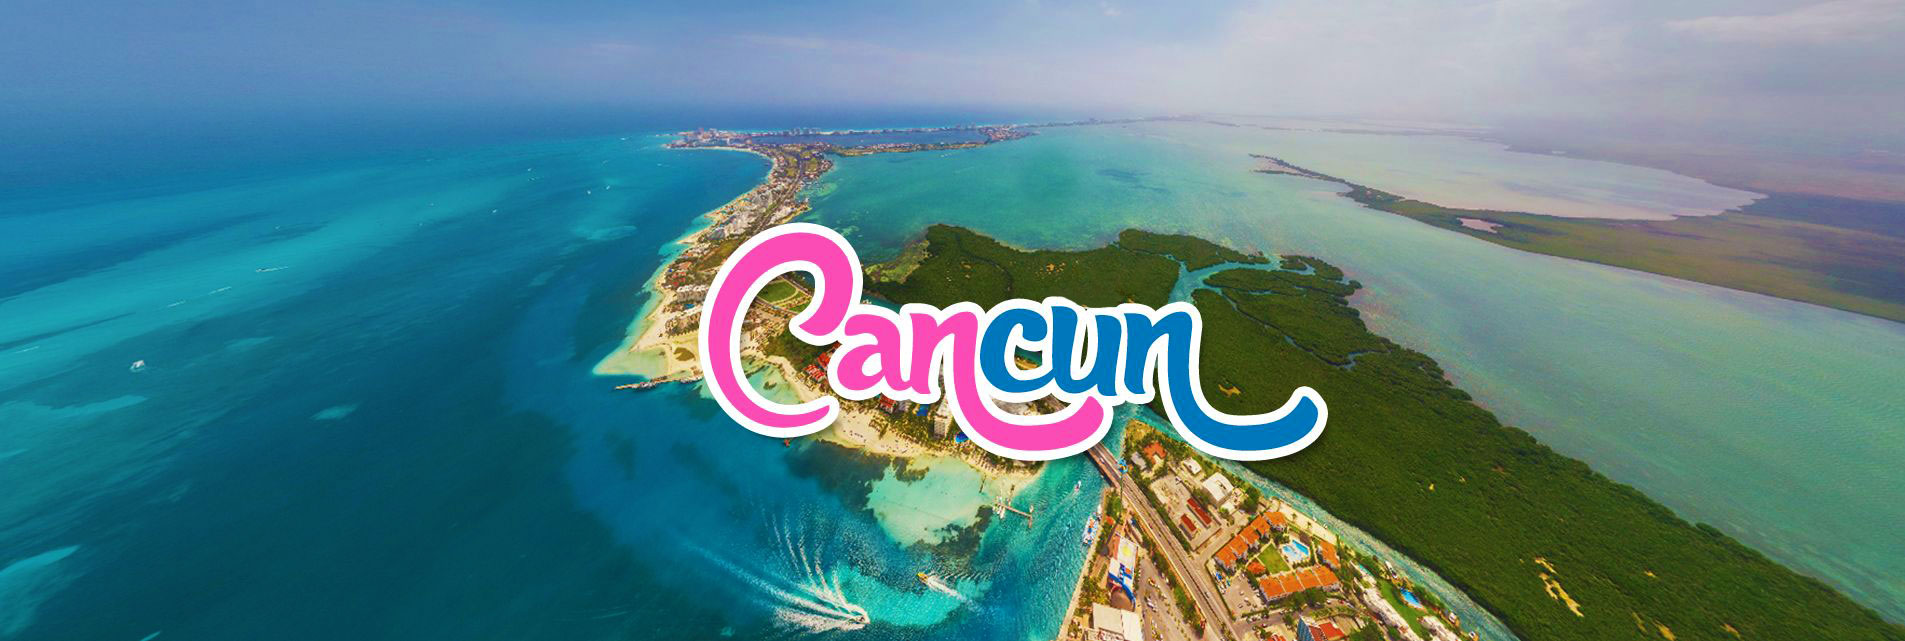 Extreme Activities do in Cancun?